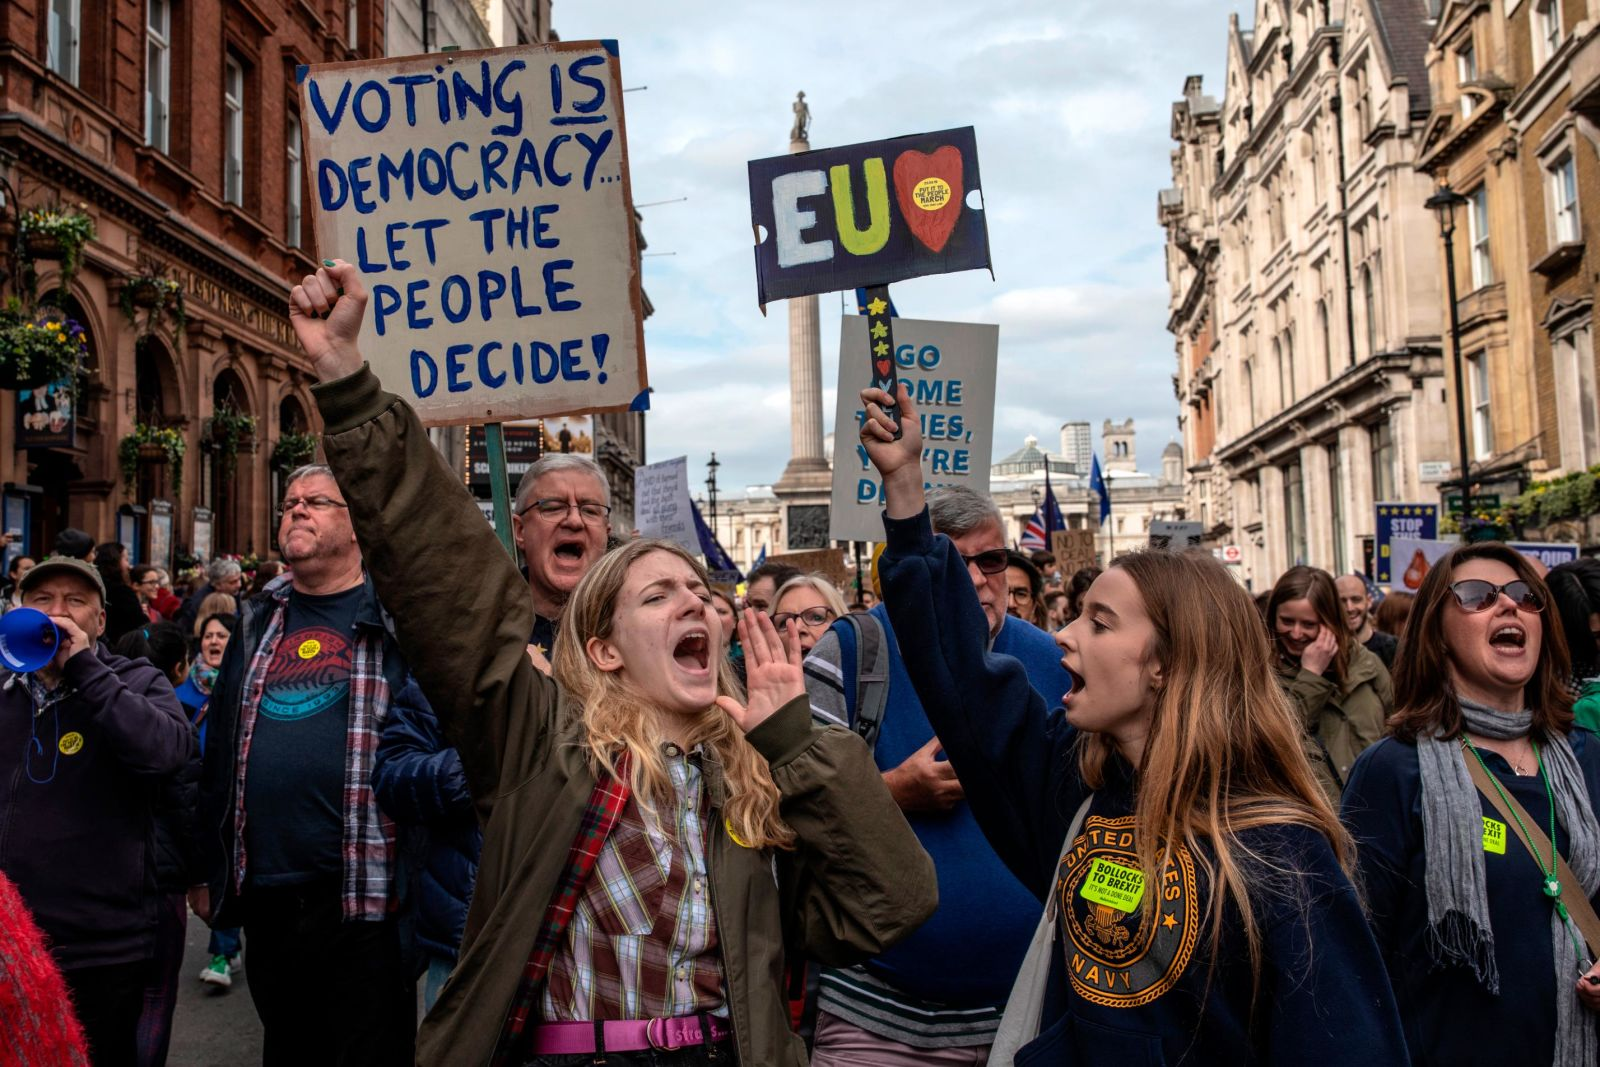 In photos: Thousands join 'People's Vote' protest